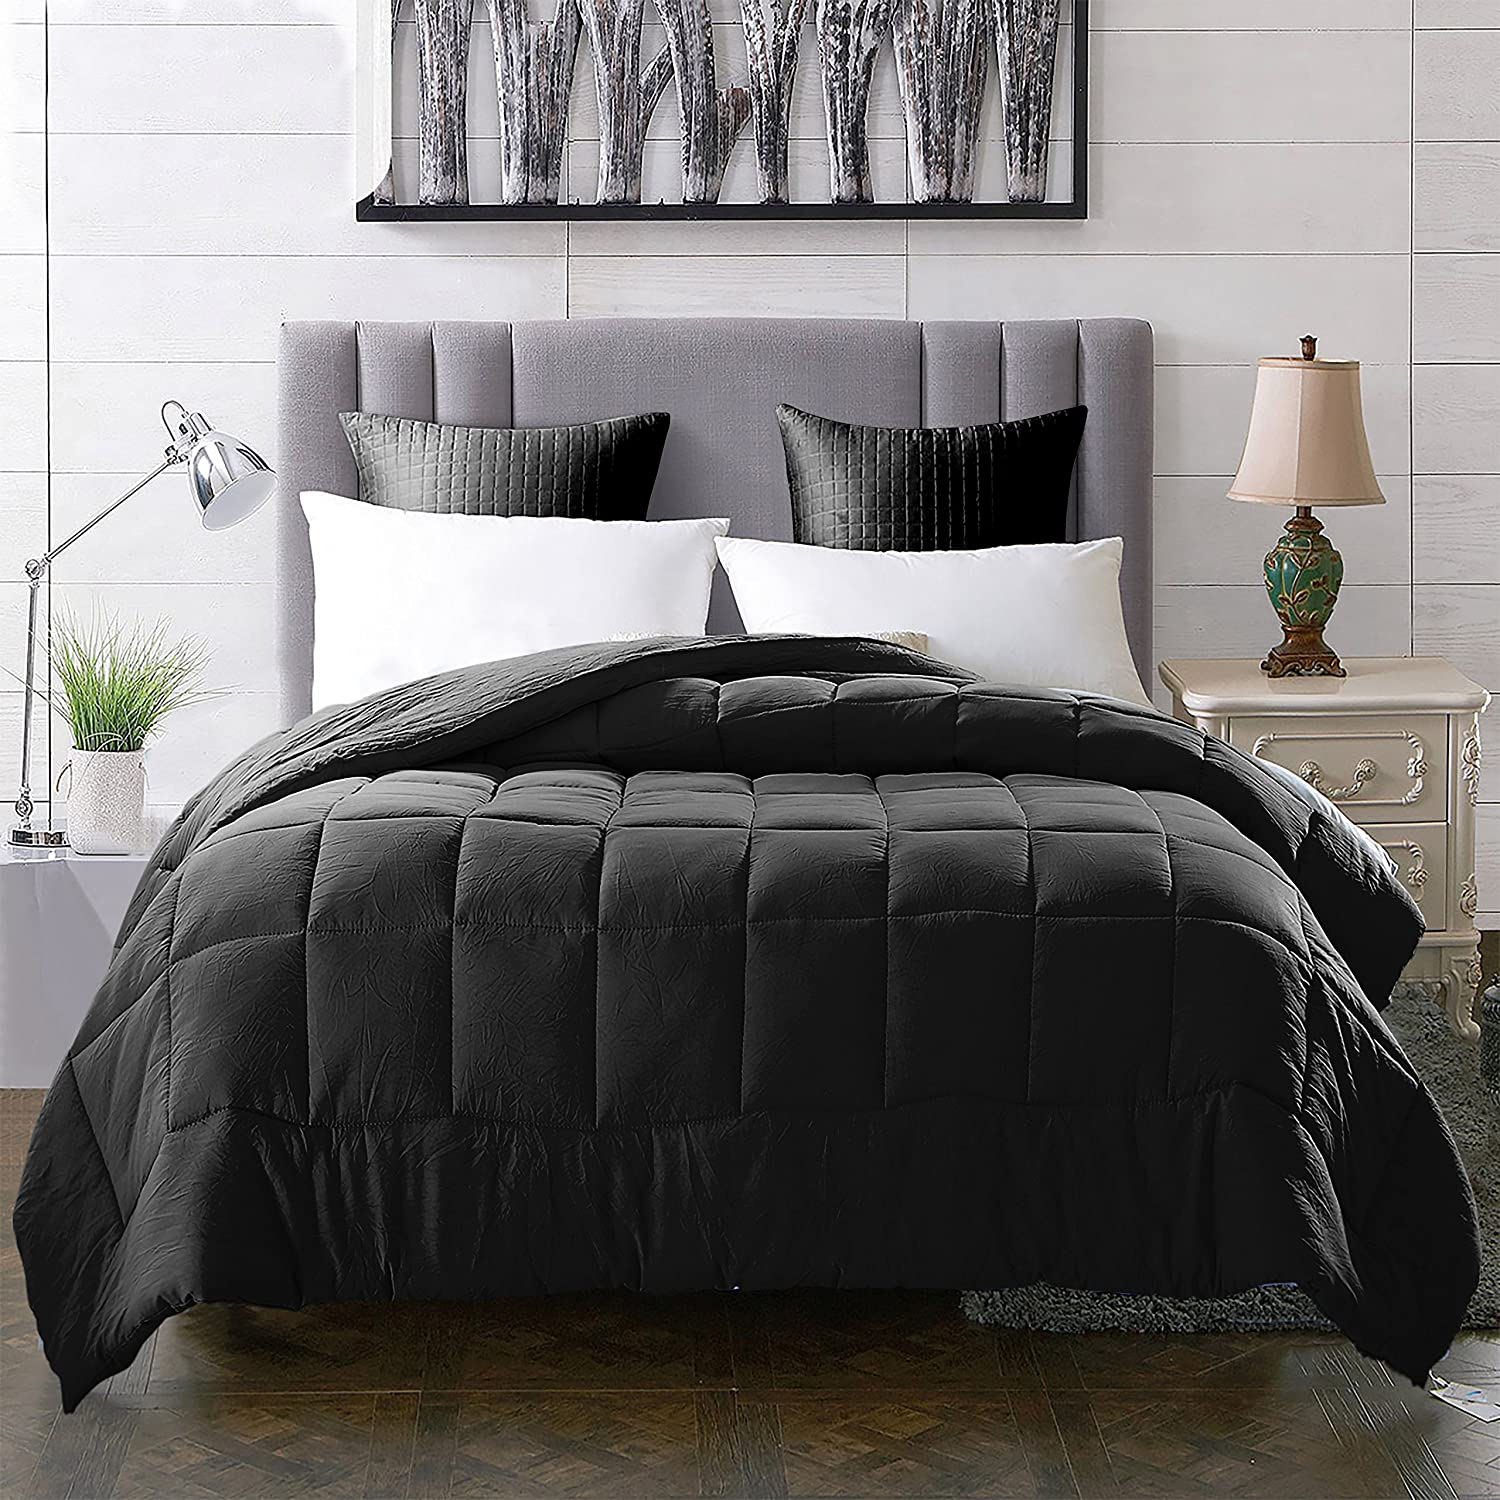 EVOLIVE All Season Pre Washed Soft Microfiber White Goose Down Alternative Comforter (Black, Full/Queen)